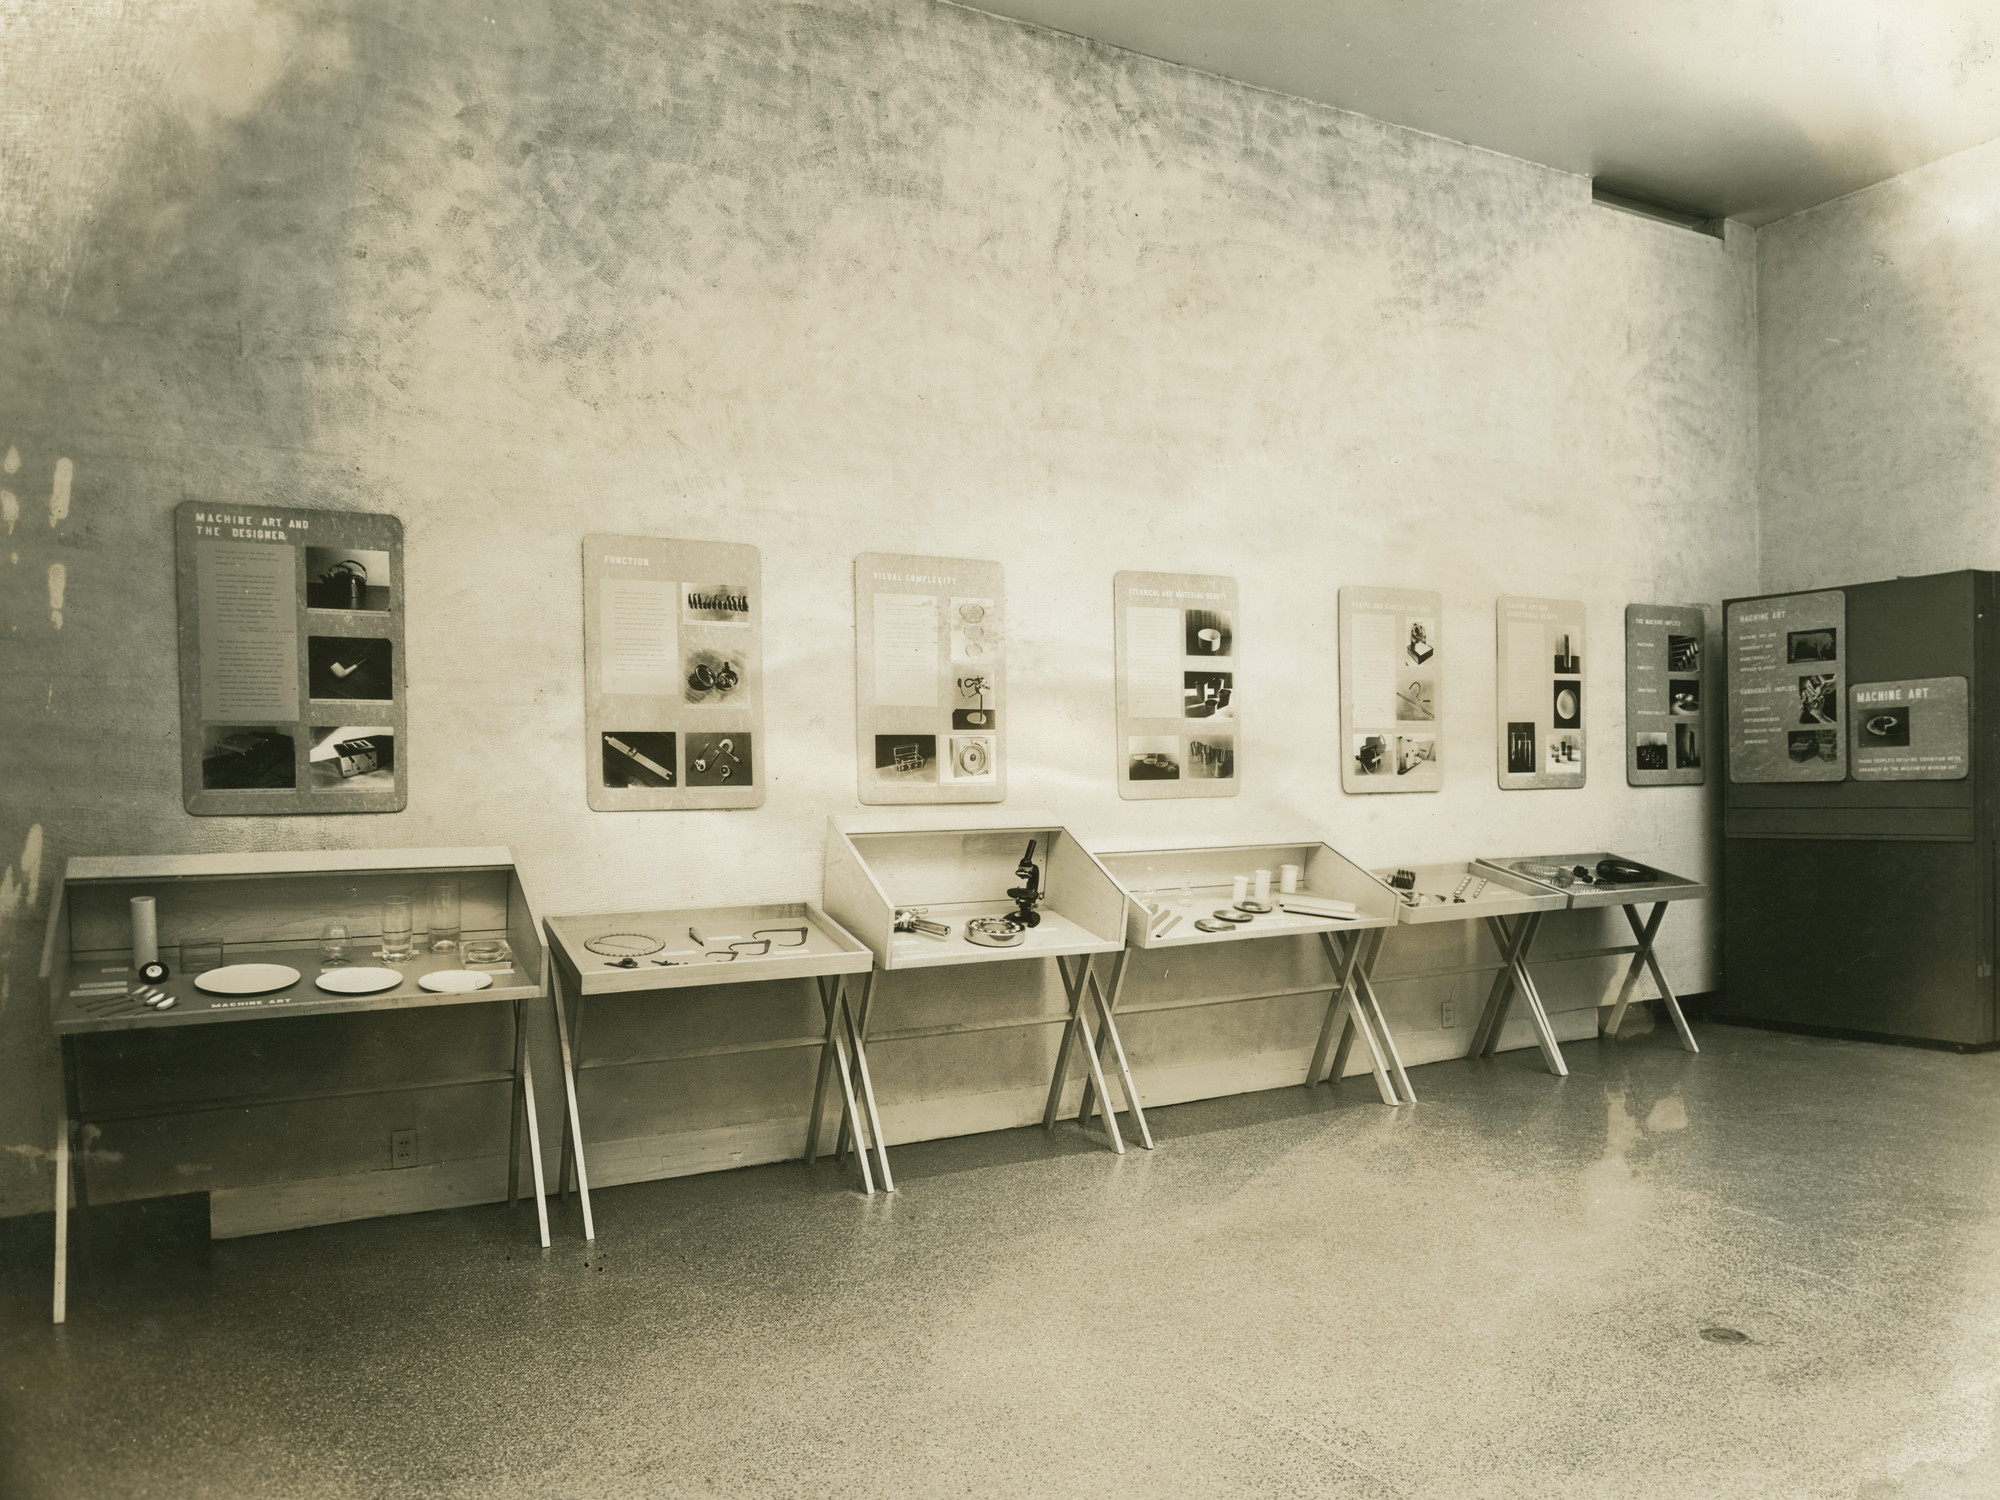 "Installation view of the exhibition, ""Machine Art"" March 7, 1938–March 31, 1938. Victor D'Amico Papers, VI.1. The Museum of Modern Art Archives, New York. IN73.1. Photograph by Soichi Sunami."